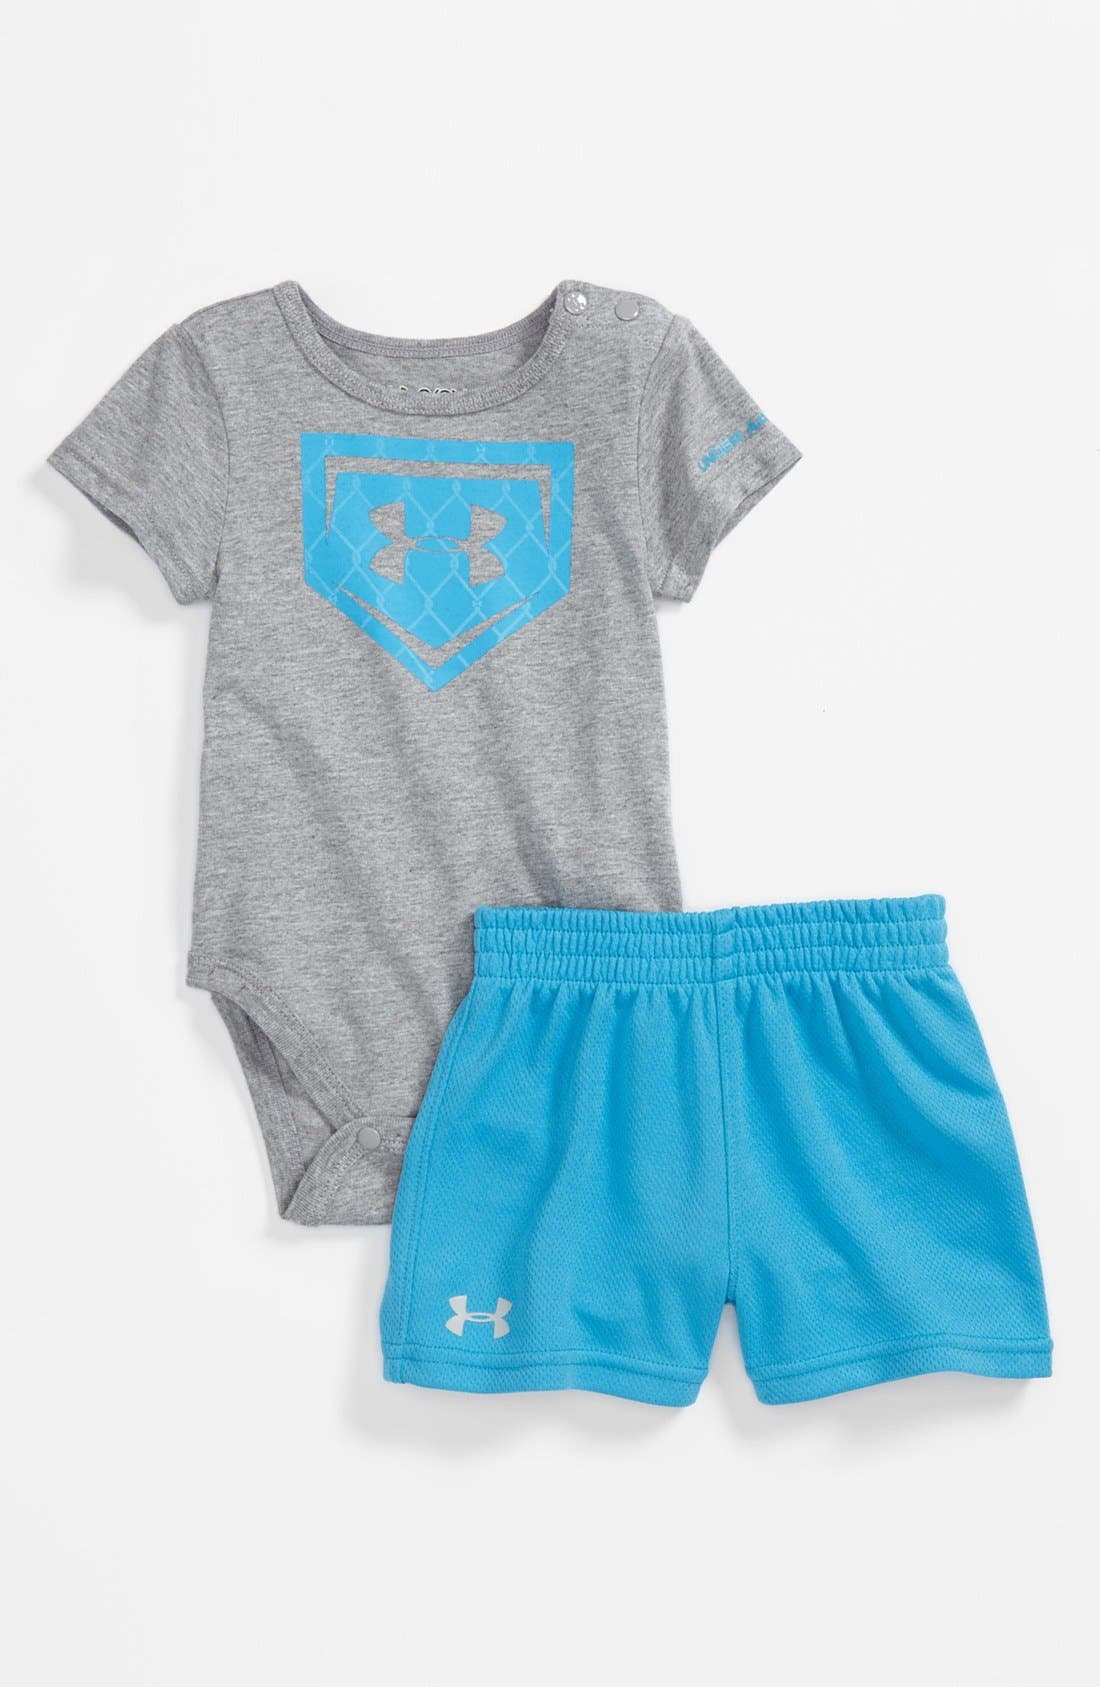 Alternate Image 1 Selected - Under Armour 'Chainlink Icon' Bodysuit & Shorts (Baby Boys)